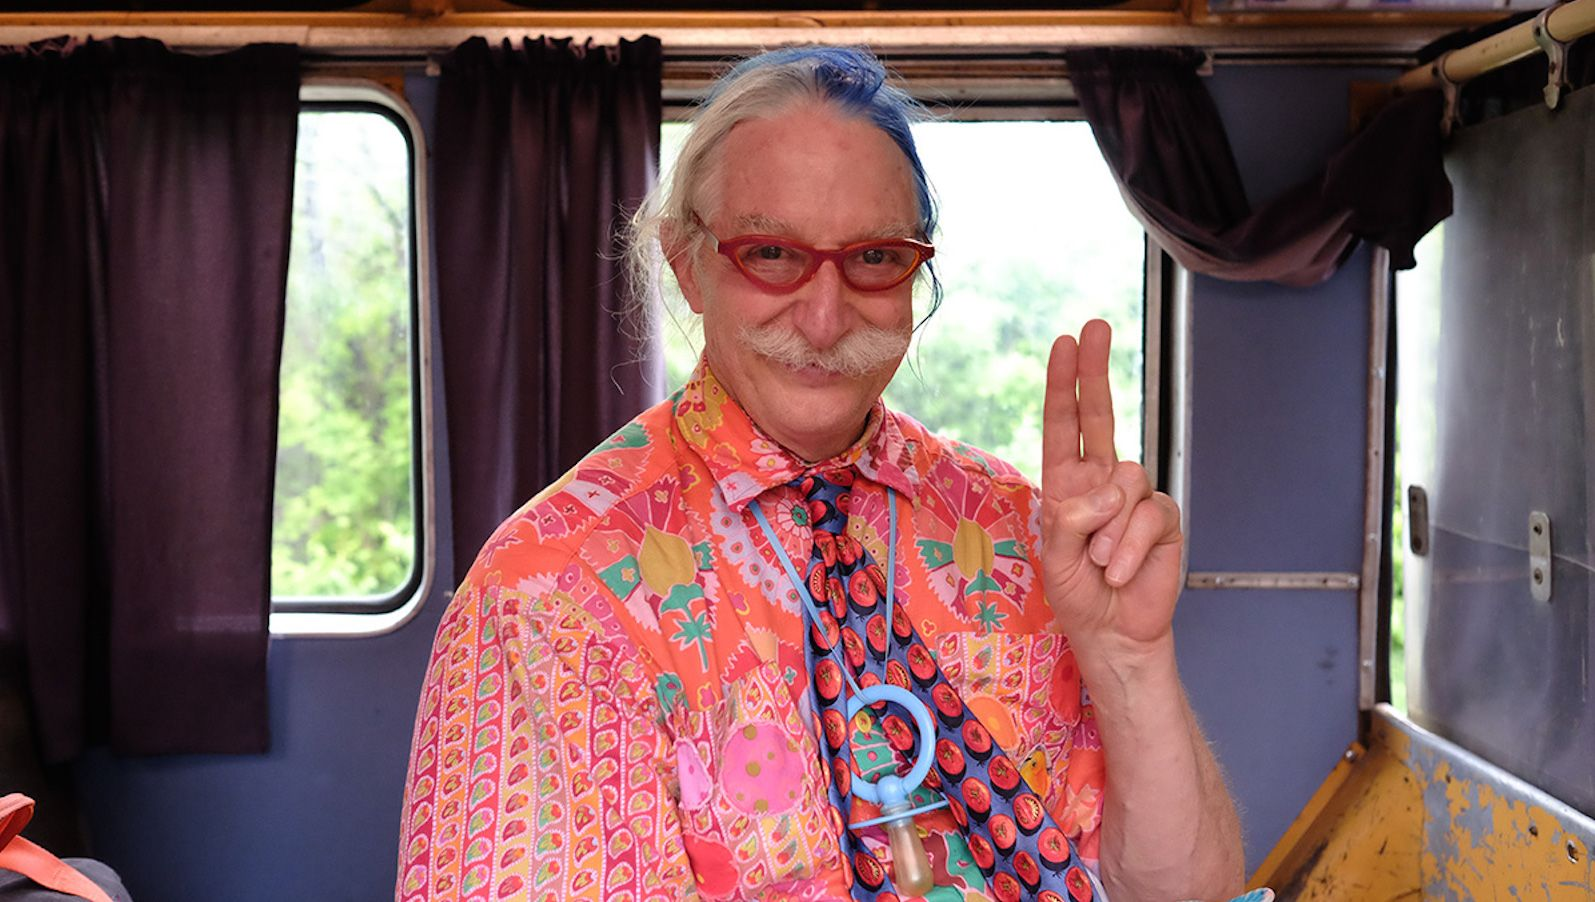 TBS Boomers: The time I met Patch Adams